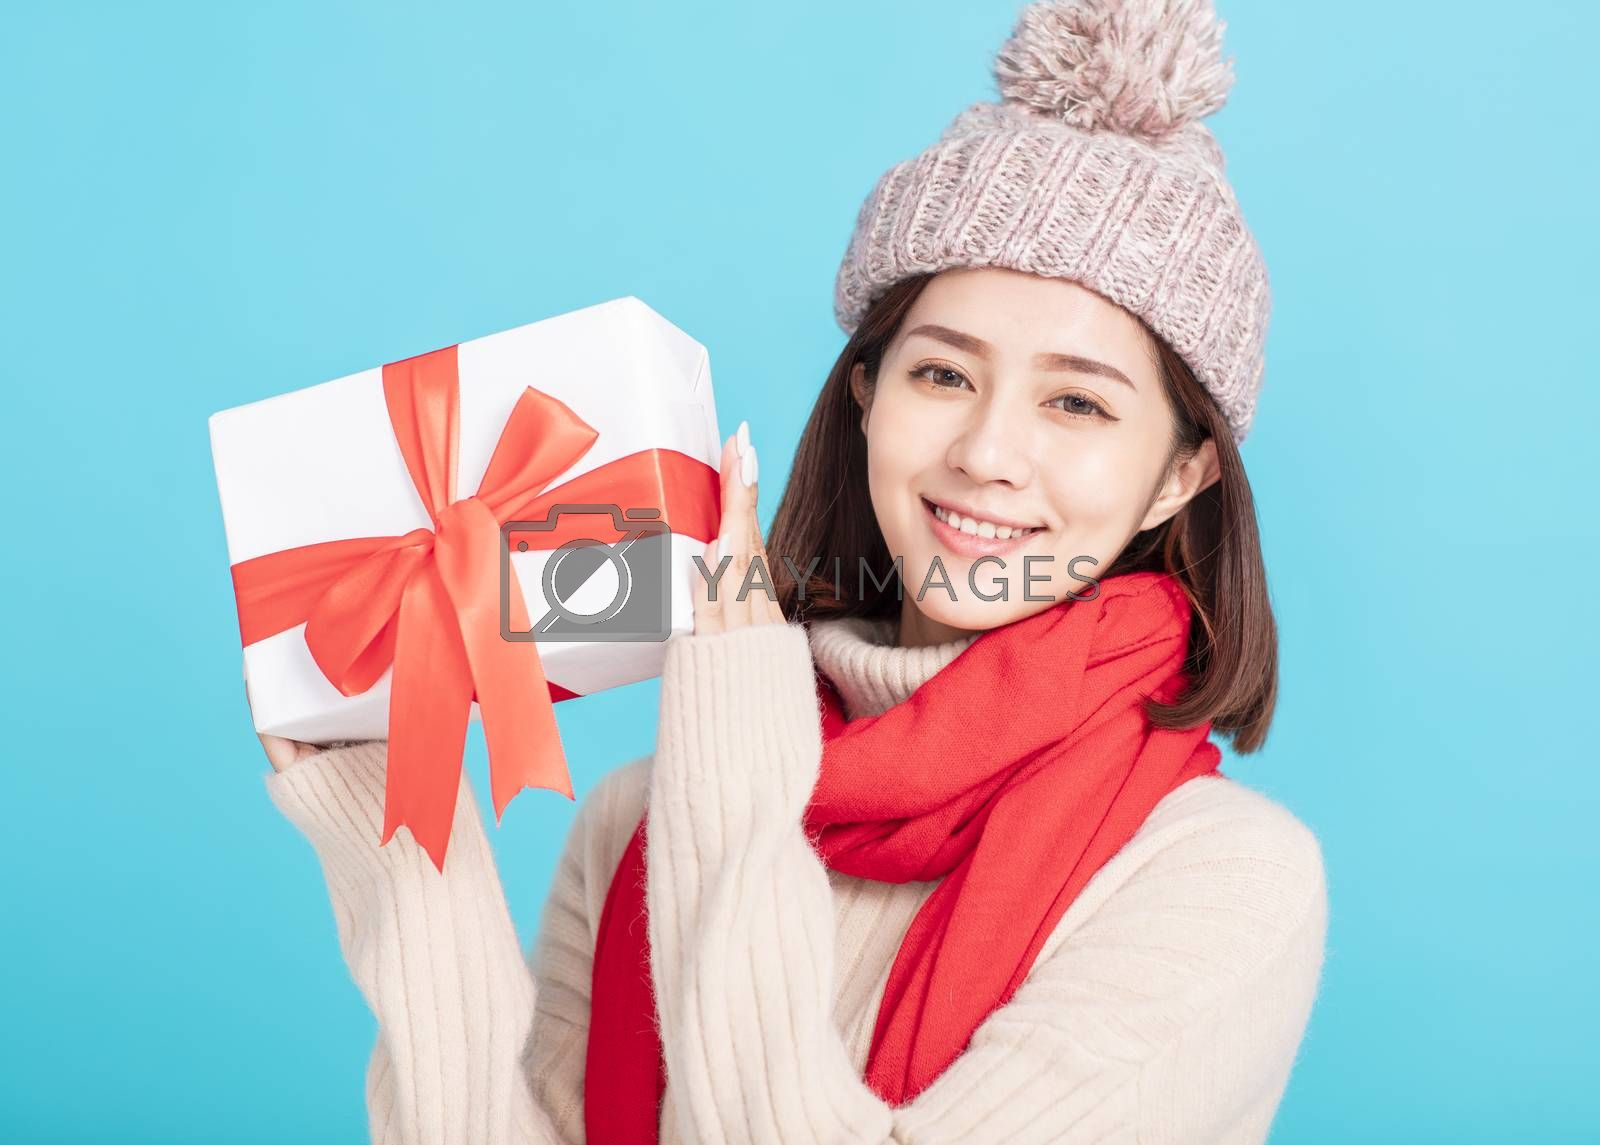 young woman in winter dress and showing giftbox